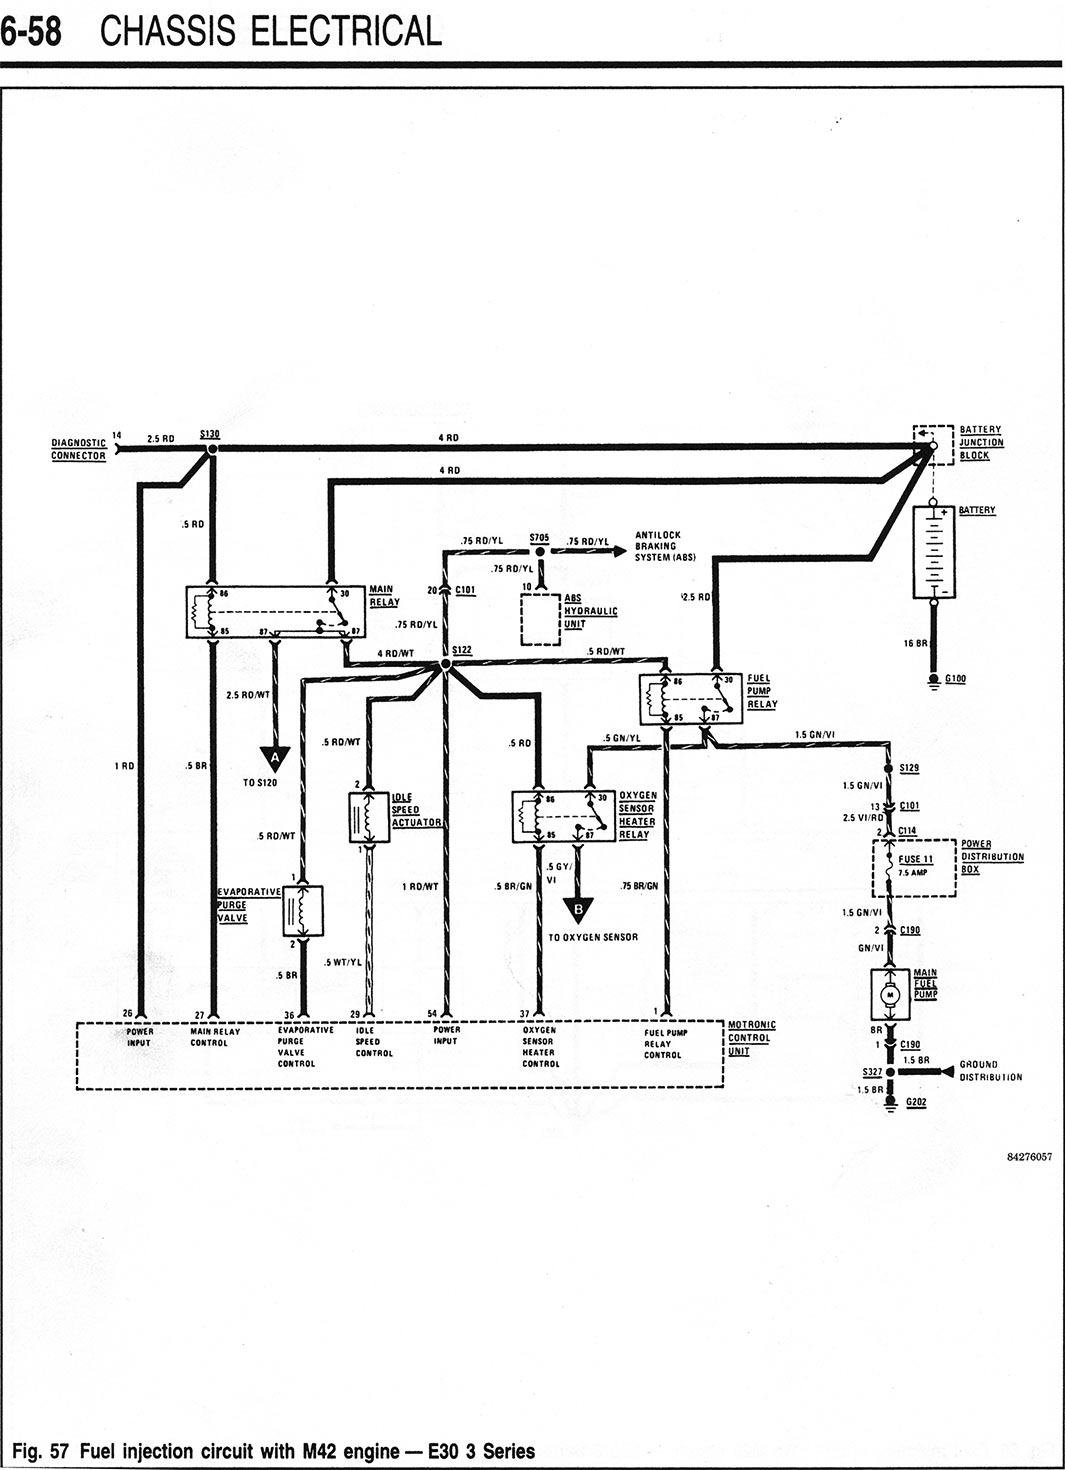 1984 Bmw 318i Fuse Box Diagram Wiring Library 335i 1991 Schematic Online 325i Location 1995